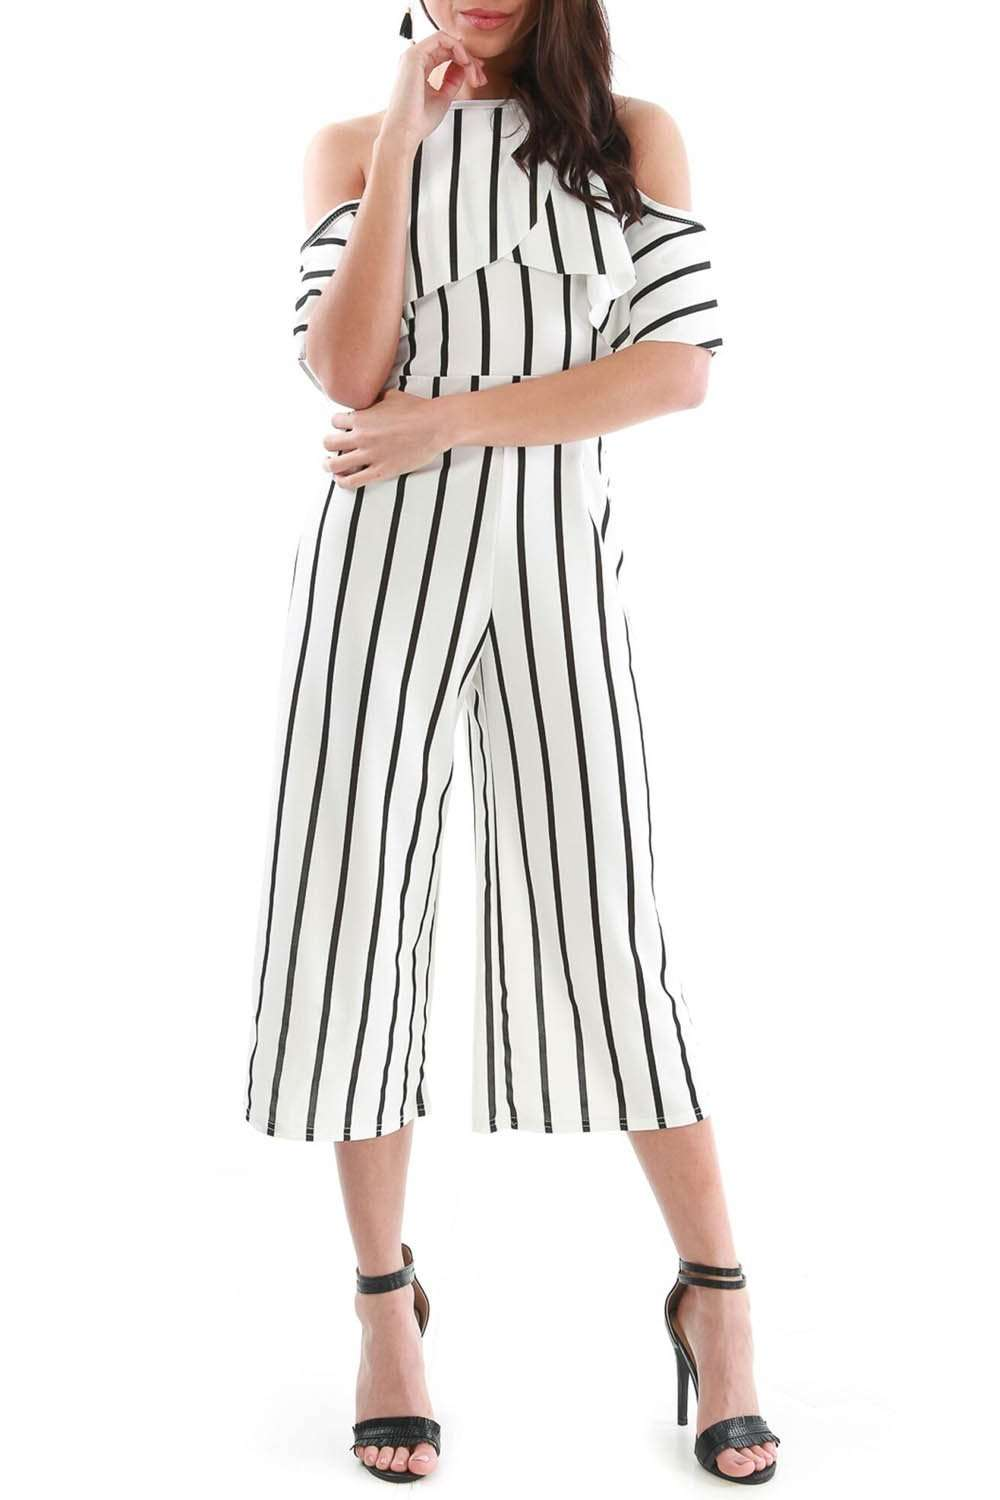 Monochrome Striped Frilly Cold Shoulder Culotte Jumpsuit - bejealous-com